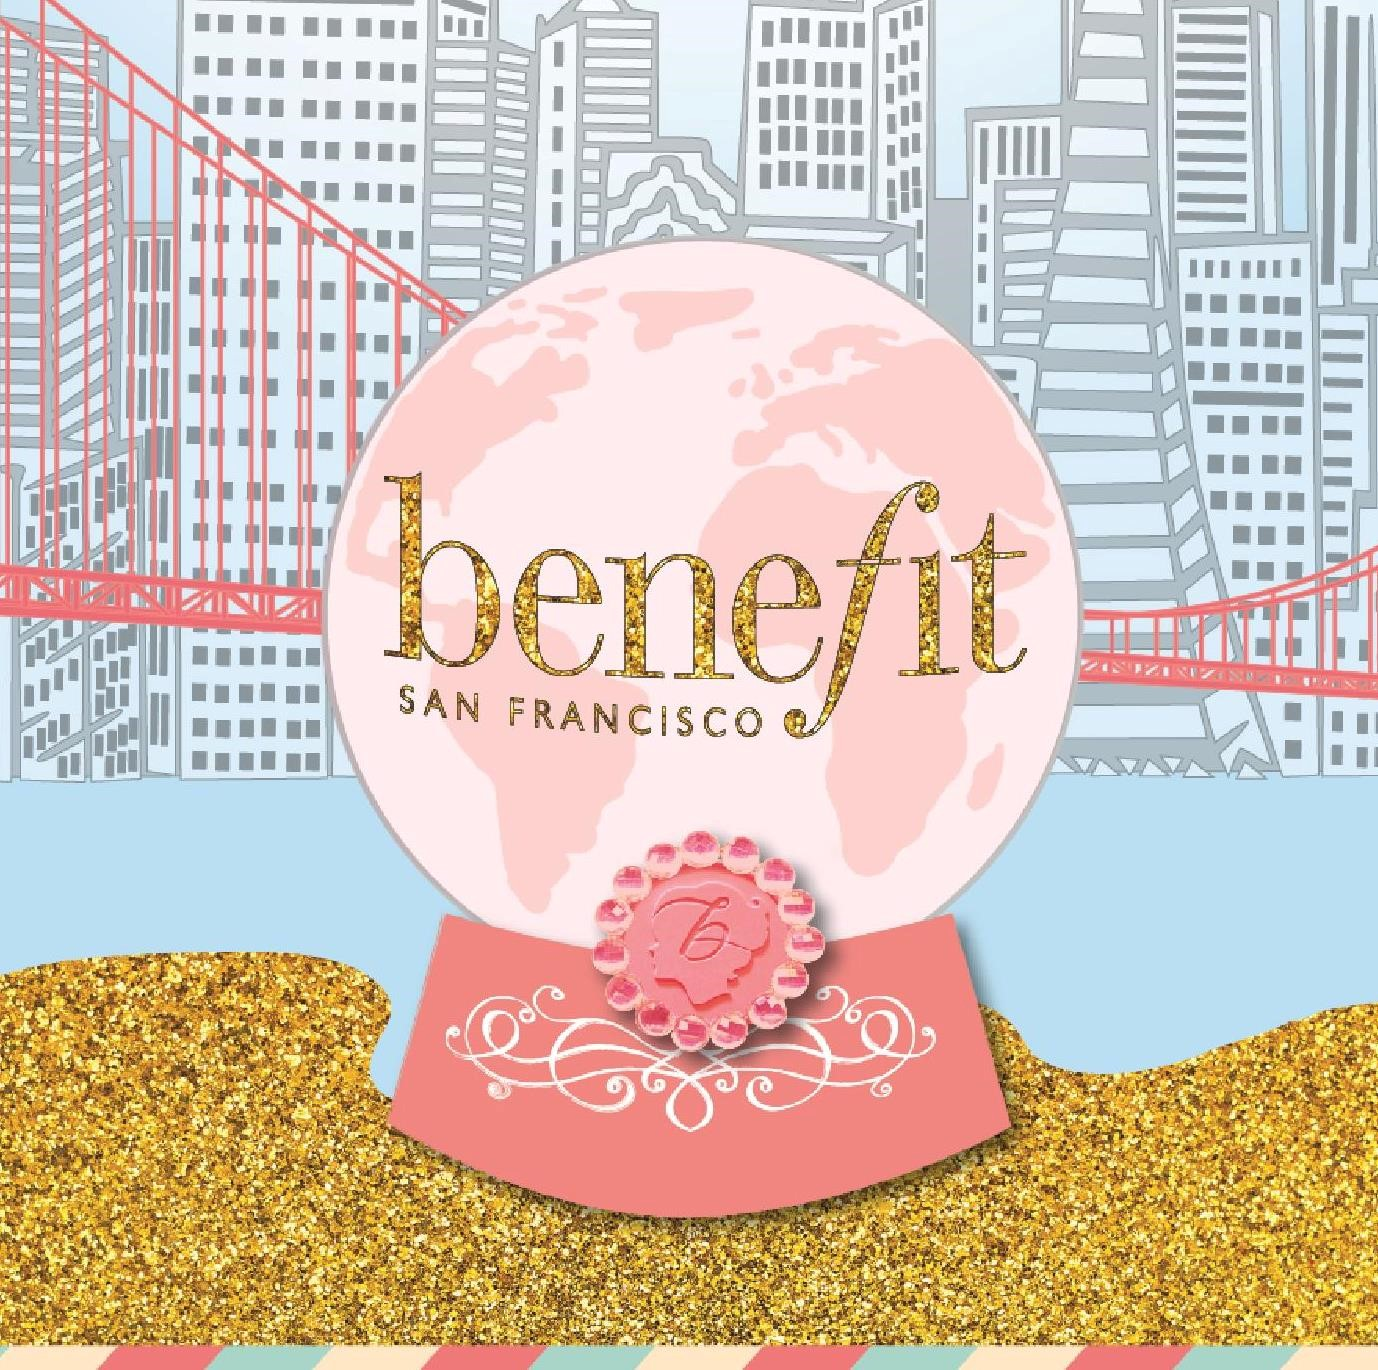 Benefit Cosmetics UK - Brow Expert Stunning lashes and beautiful brows aren't too much to ask for, are they? We don't think so. Which is why, alongside our best-selling products, we have Brow Bar Experts like you making our customers look amazing.